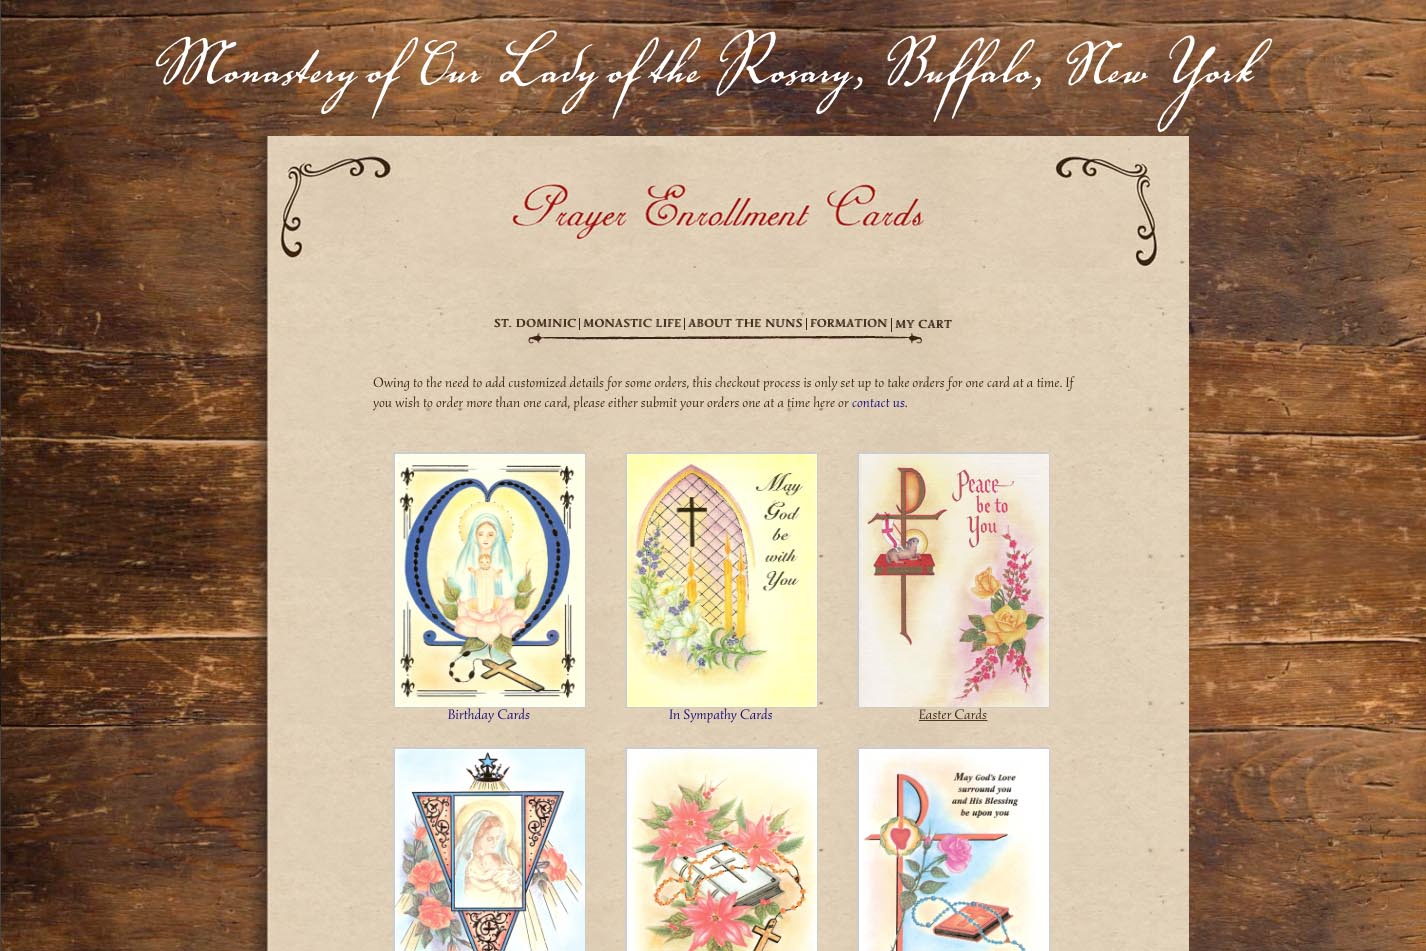 web design for a monastery - prayer cards landing page